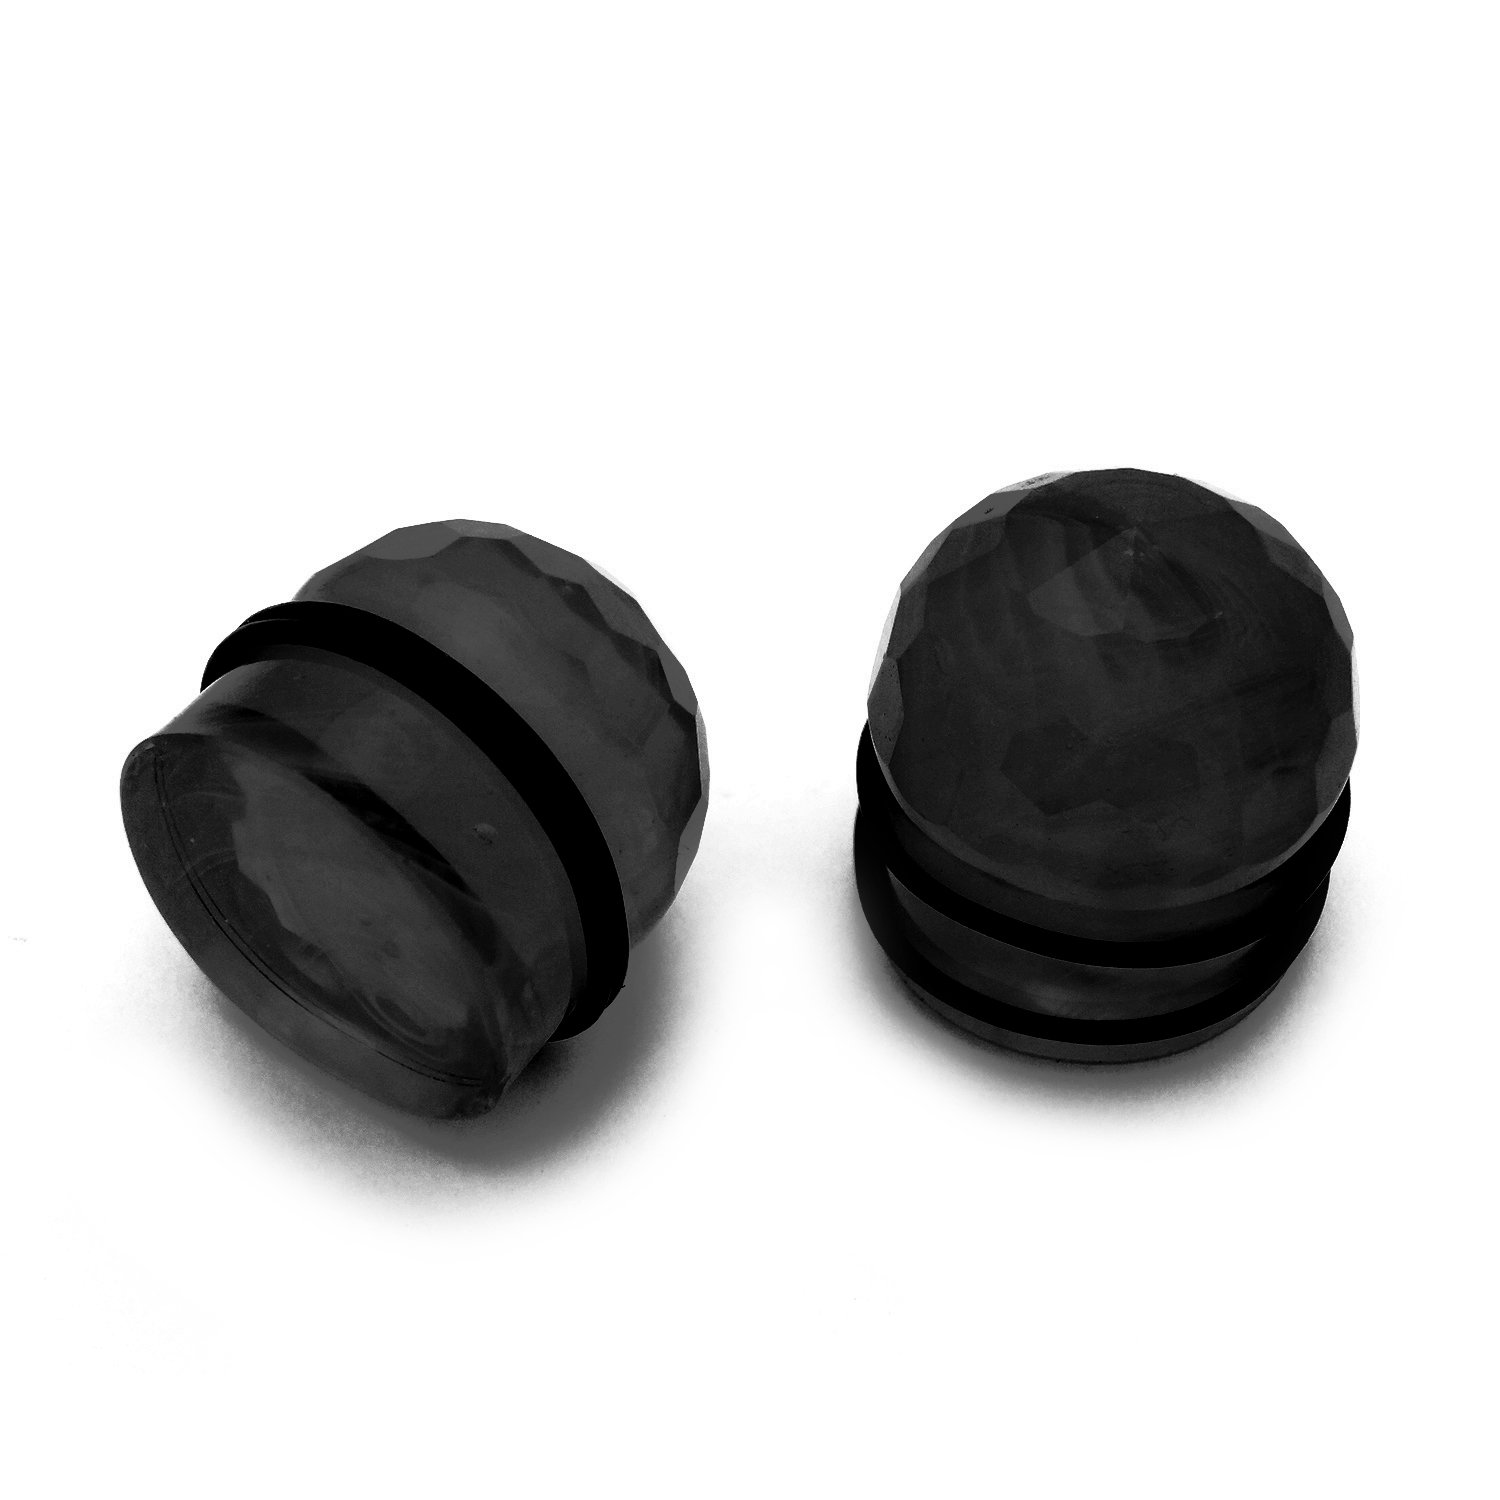 JewelryVolt Pair of Glass Orb Plugs Gauge Disco Chandelier Geometric Faceted Cut